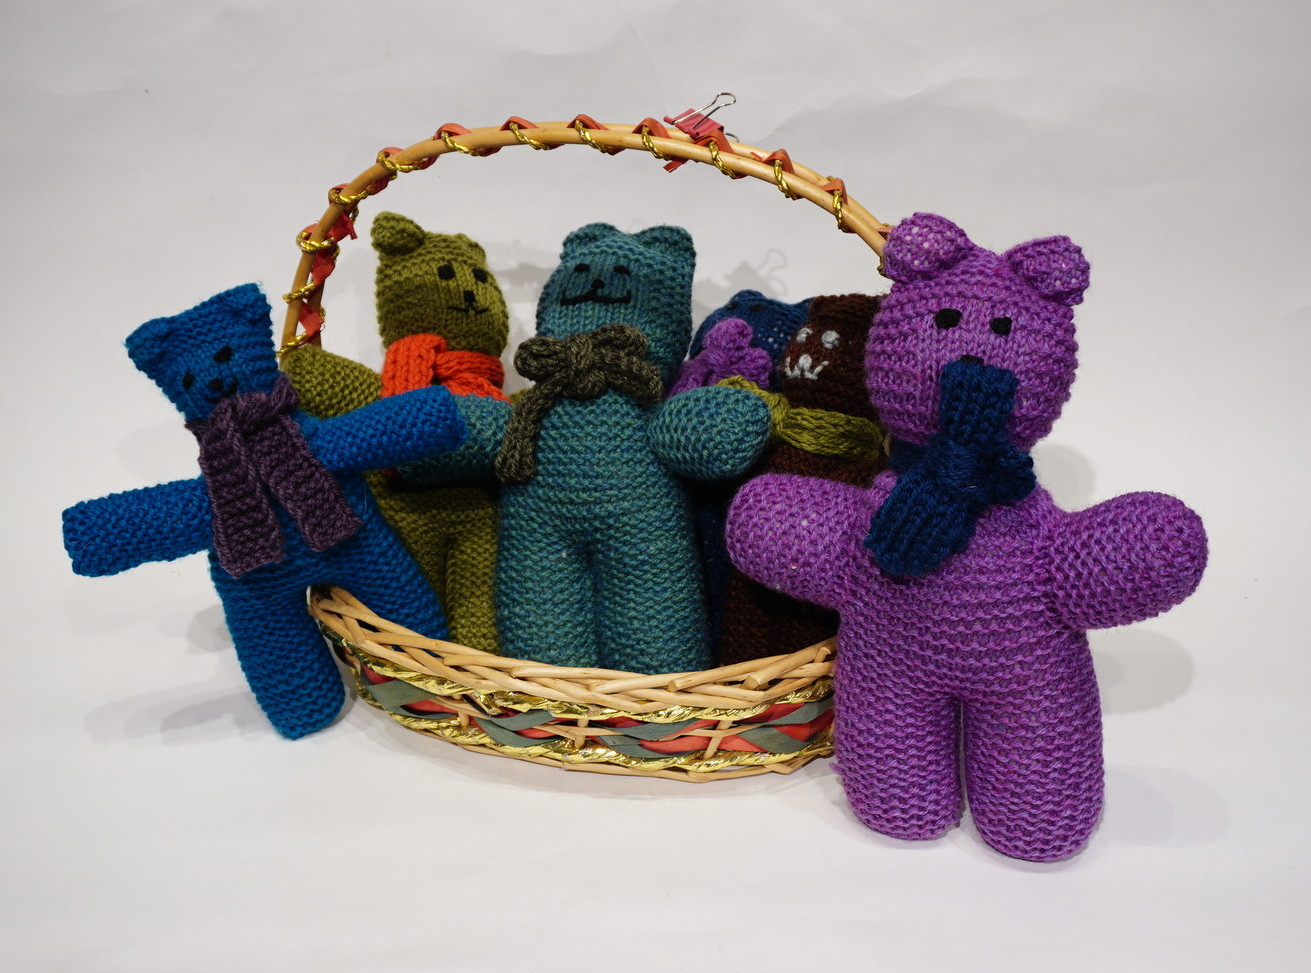 <p>Knitted Teddy Bears&nbsp;</p>